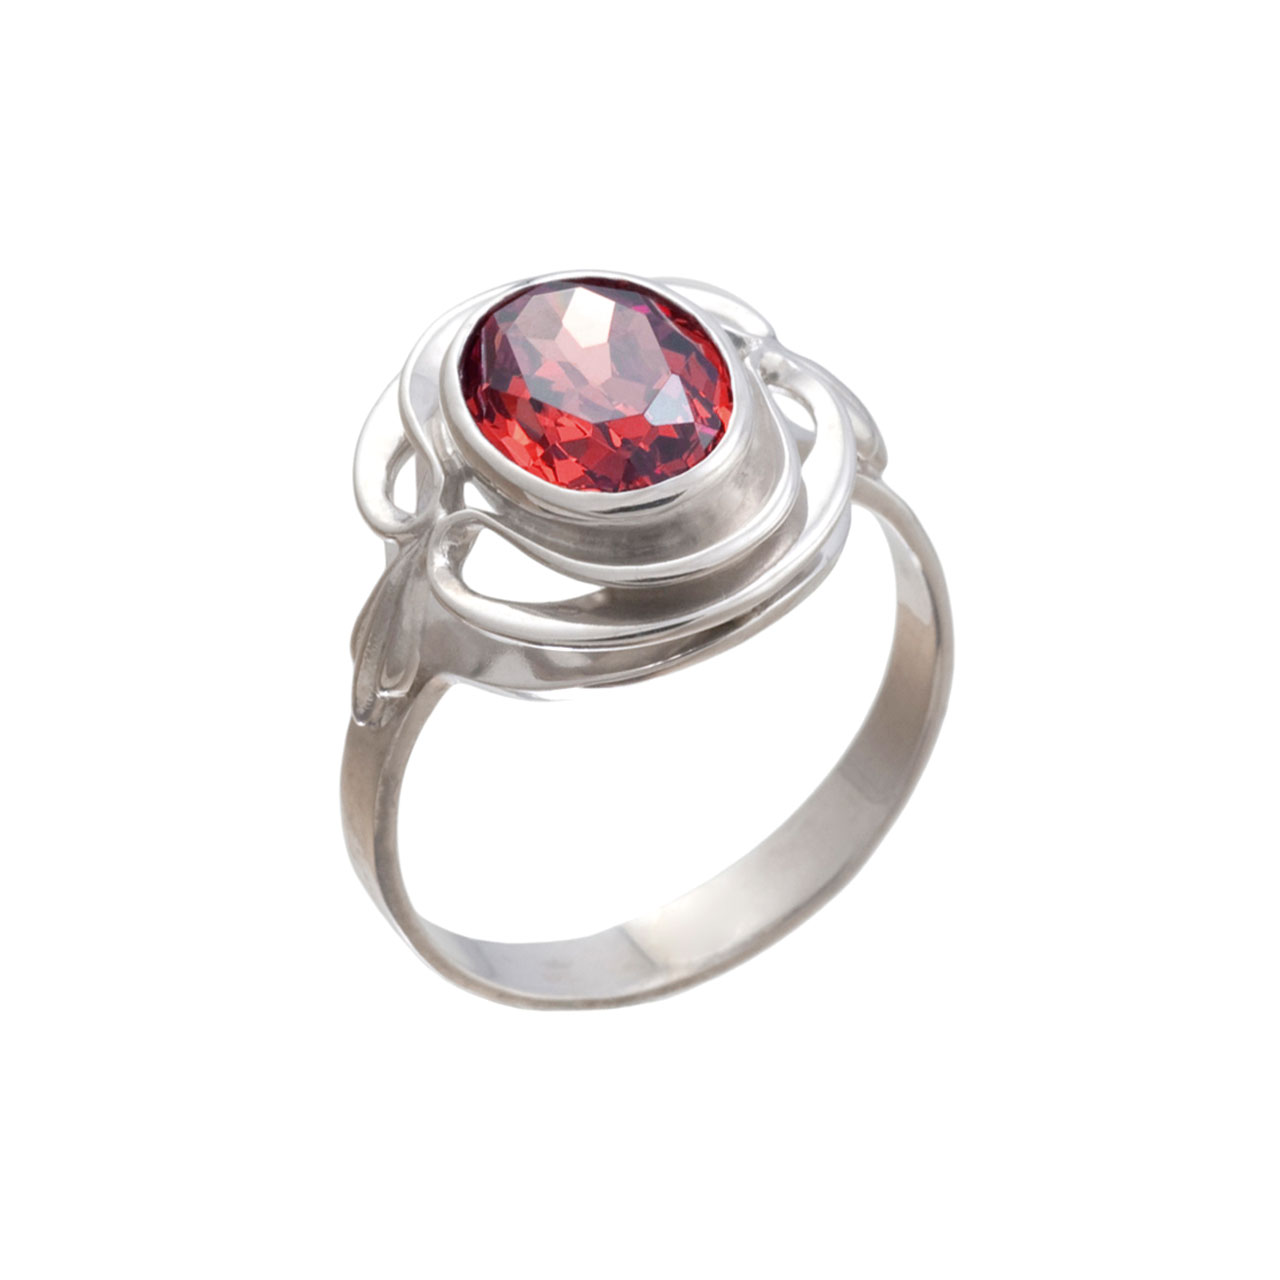 Silver Ring With Colored Swarovski CZ Elements: A Ruby